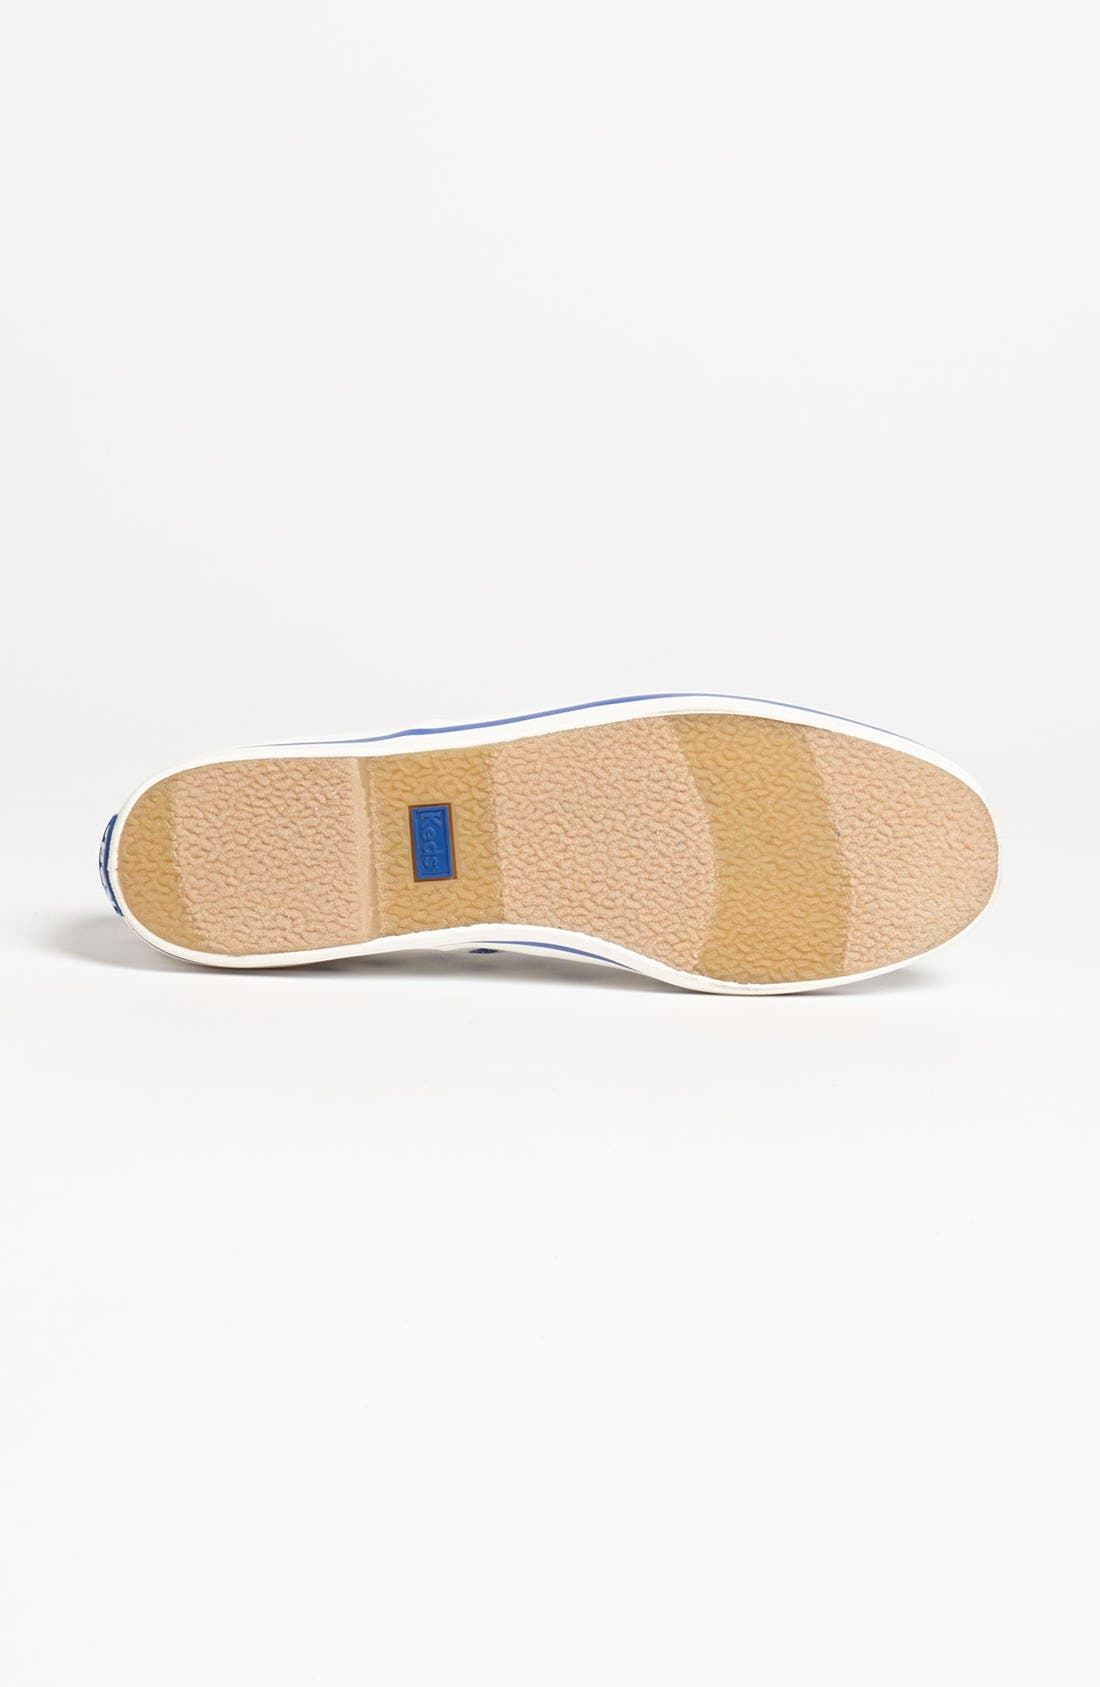 ,                             Keds<sup>®</sup> for kate spade new york 'kick' sneaker,                             Alternate thumbnail 3, color,                             403